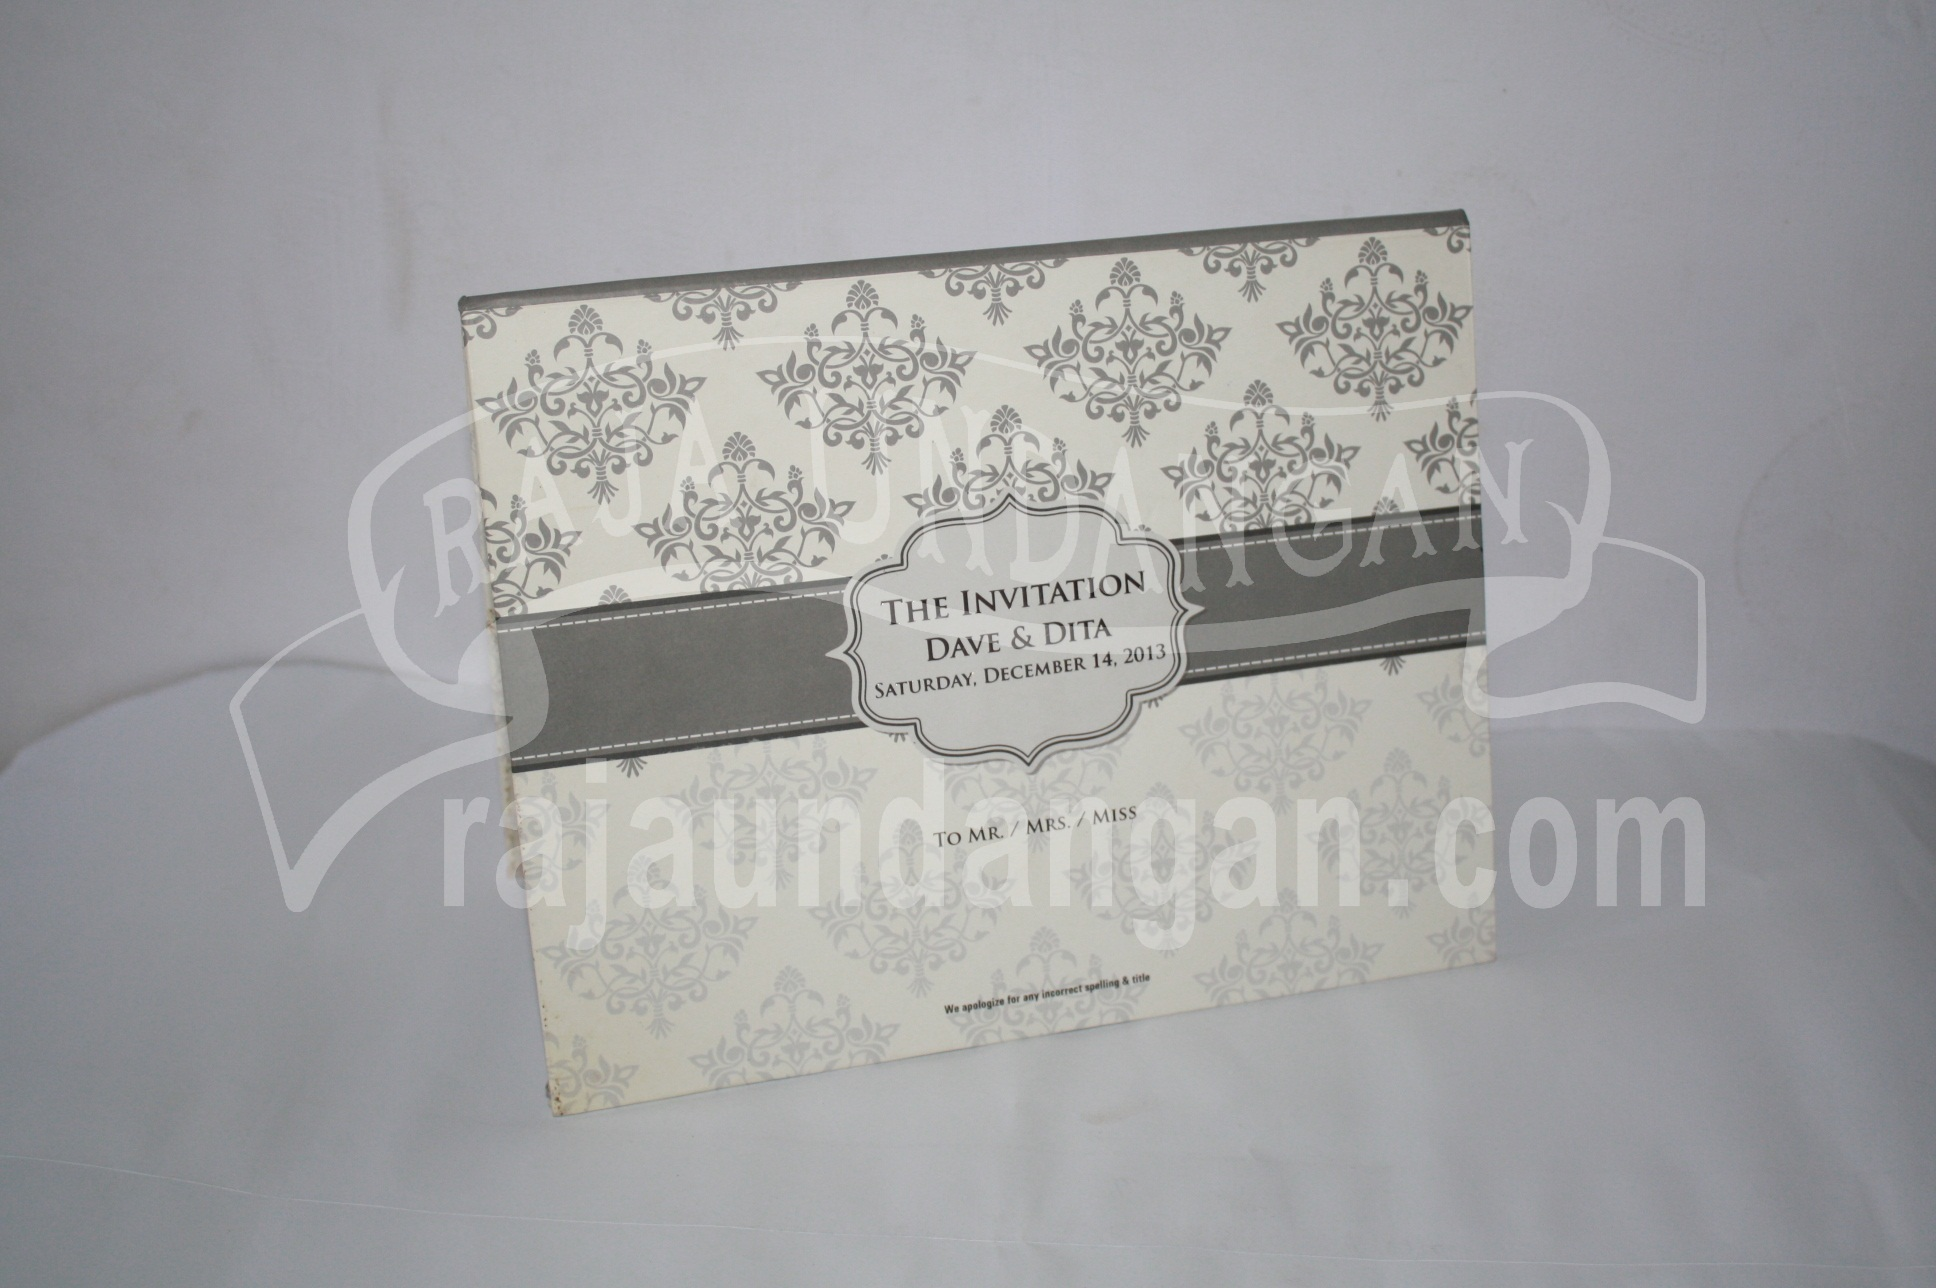 Undangan Pernikahan Hardcover Pop Up Dave dan Dita EDC 391 - Percetakan Wedding Invitations Eksklusif di Dukuh Setro